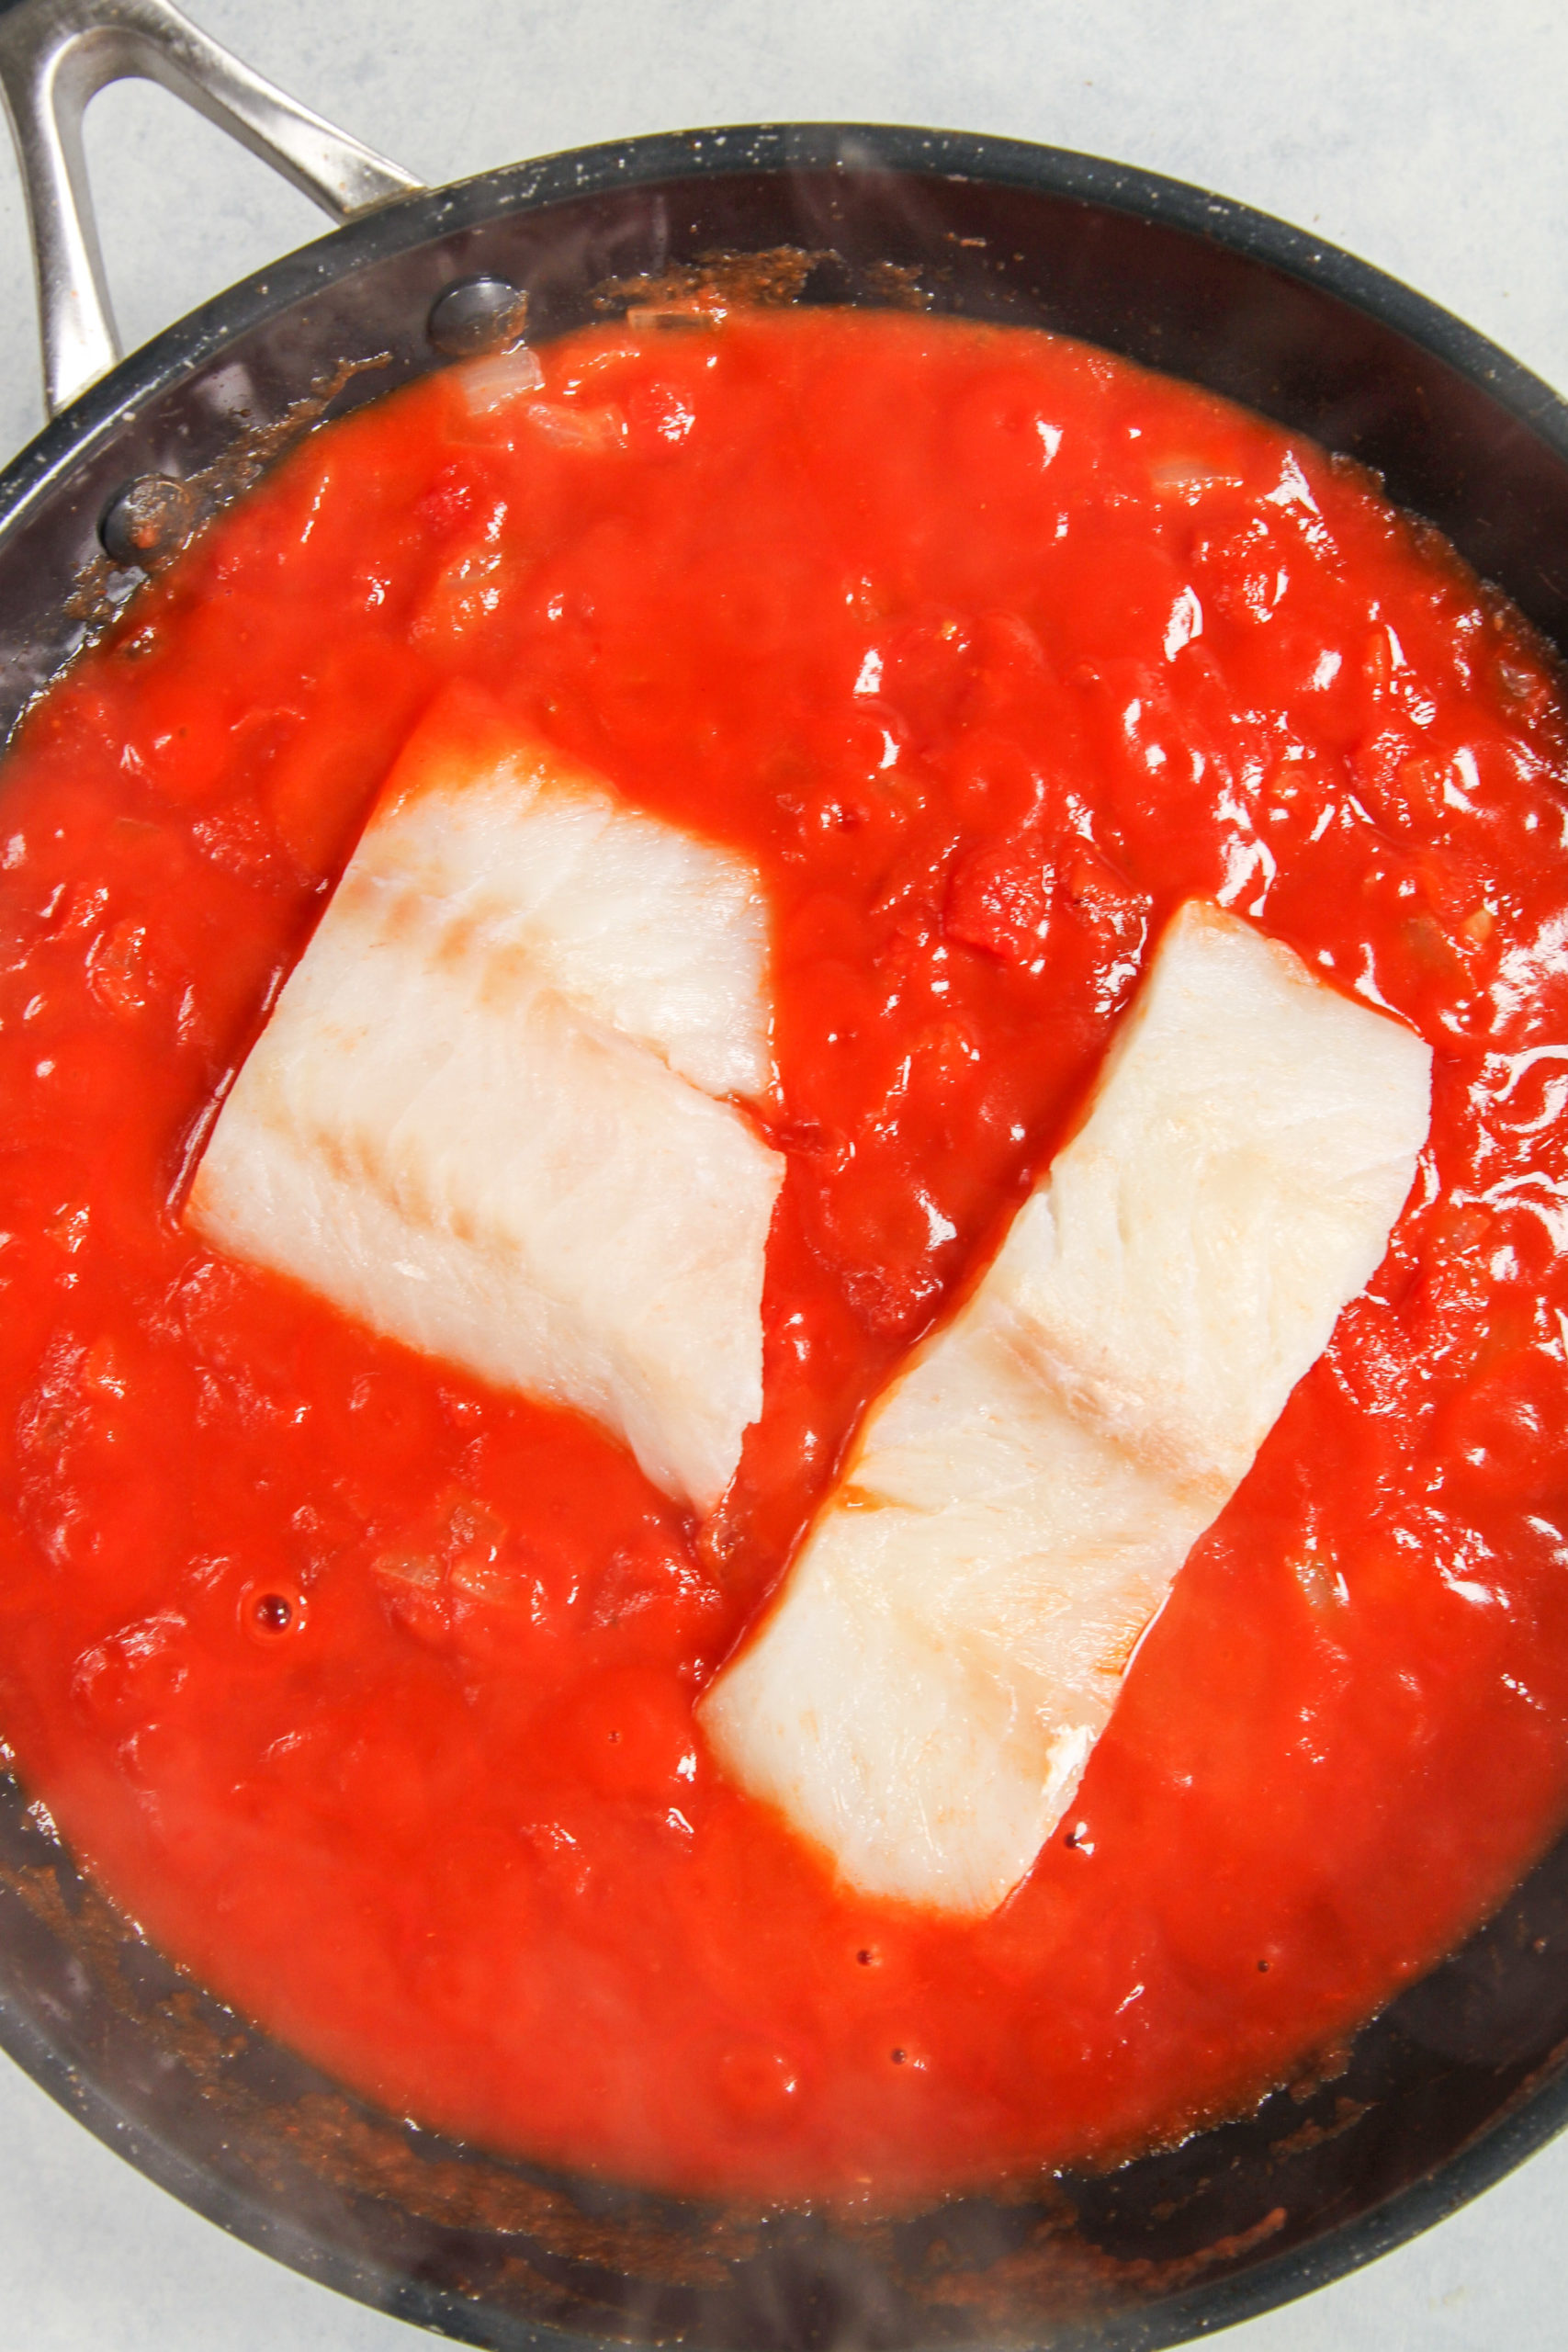 Fish resting in tomato sauce